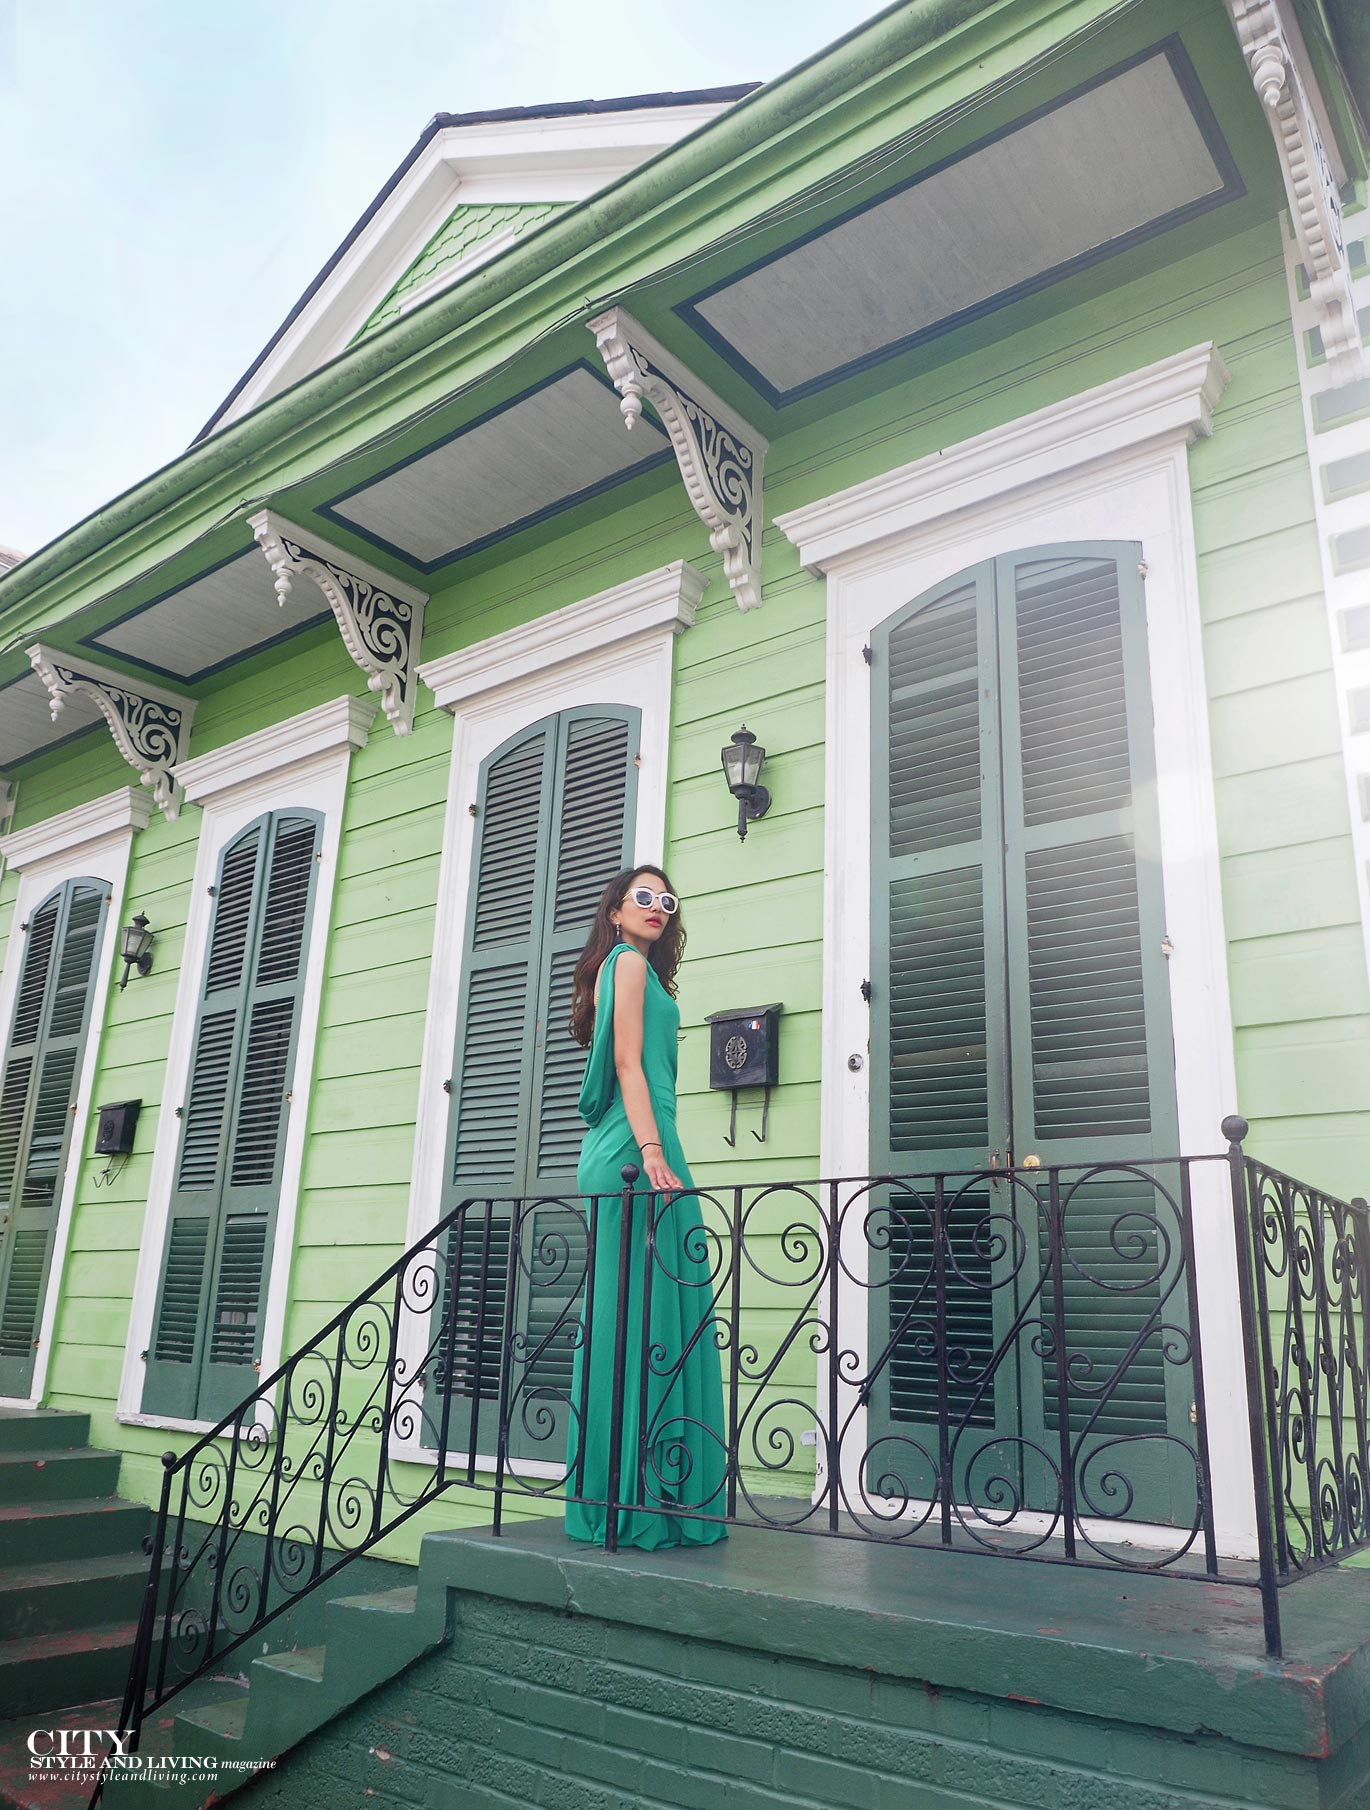 City style and living magazine The Editors Notebook style fashion blogger Shivana Maharaj French Quarter New Orleans Soniat House Balcony wearing BCBG Max Azria green maxi dress st. ann street